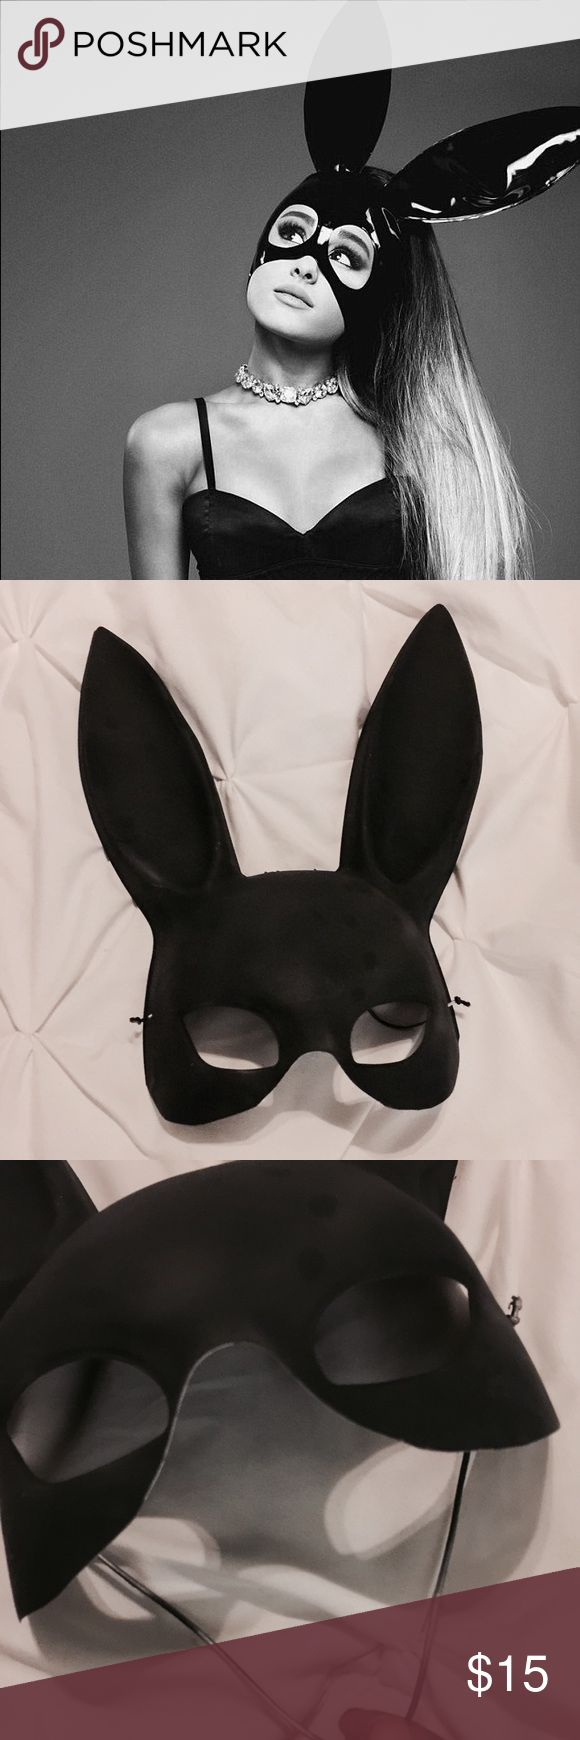 The 25+ best Bunny mask ideas on Pinterest | Cool guy stuff, Paper ...